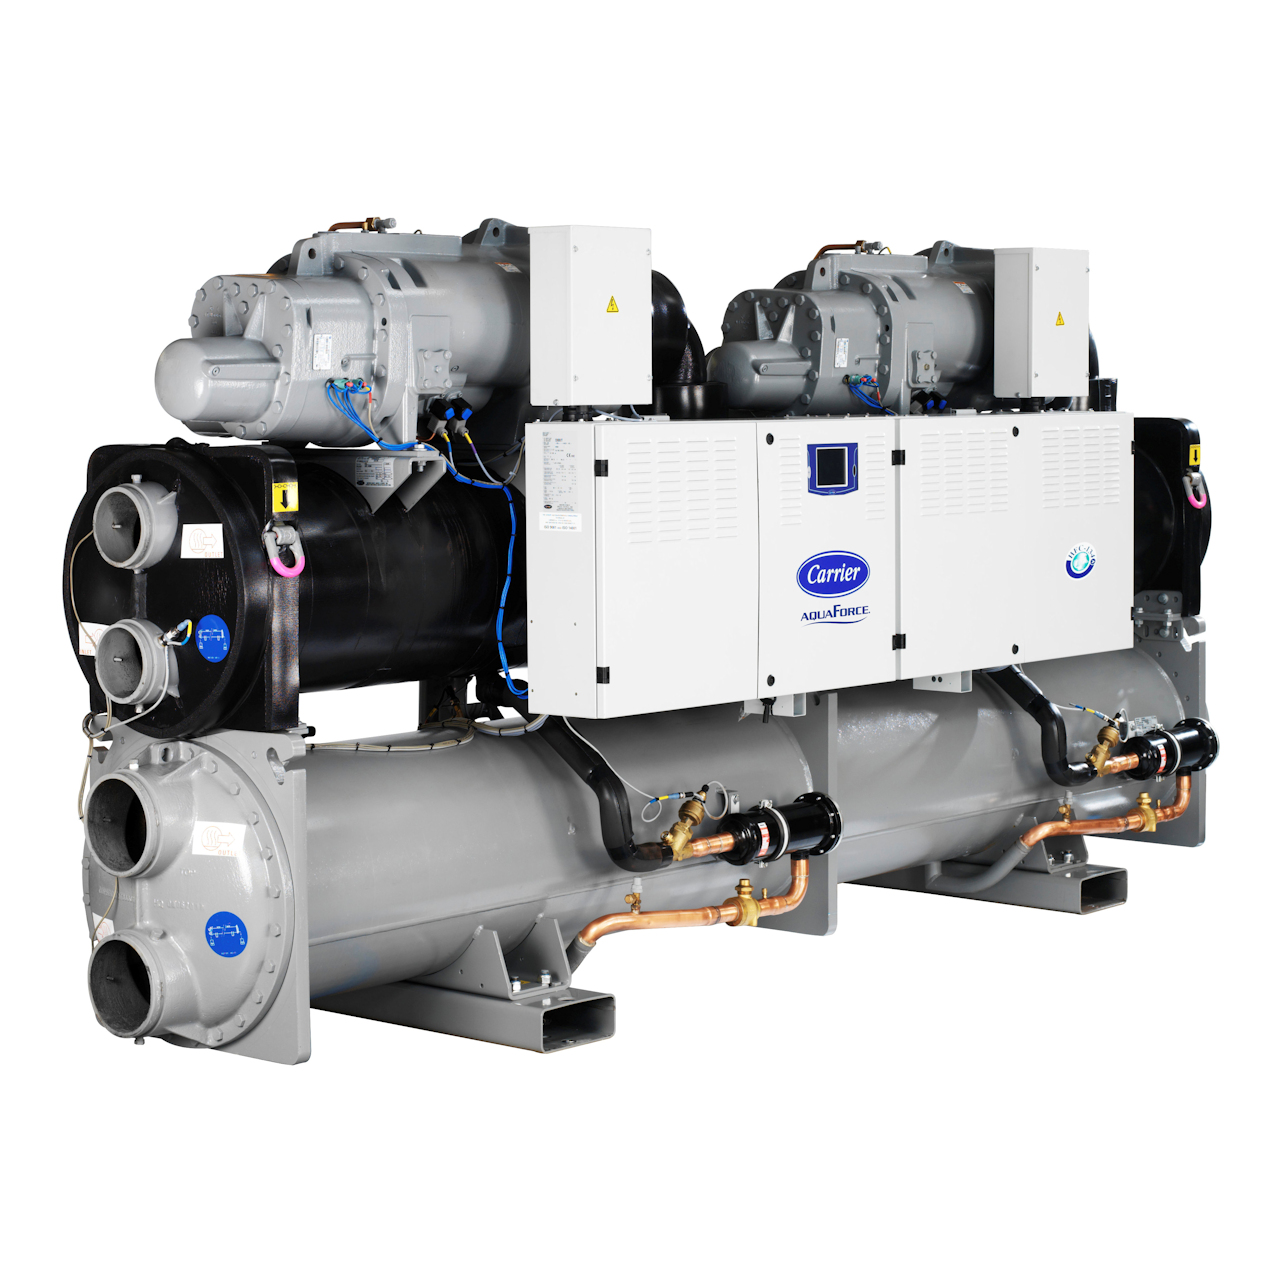 carrier-30XW-30XW-P-water-cooled-screw-chiller-2-circuits-with-insulation